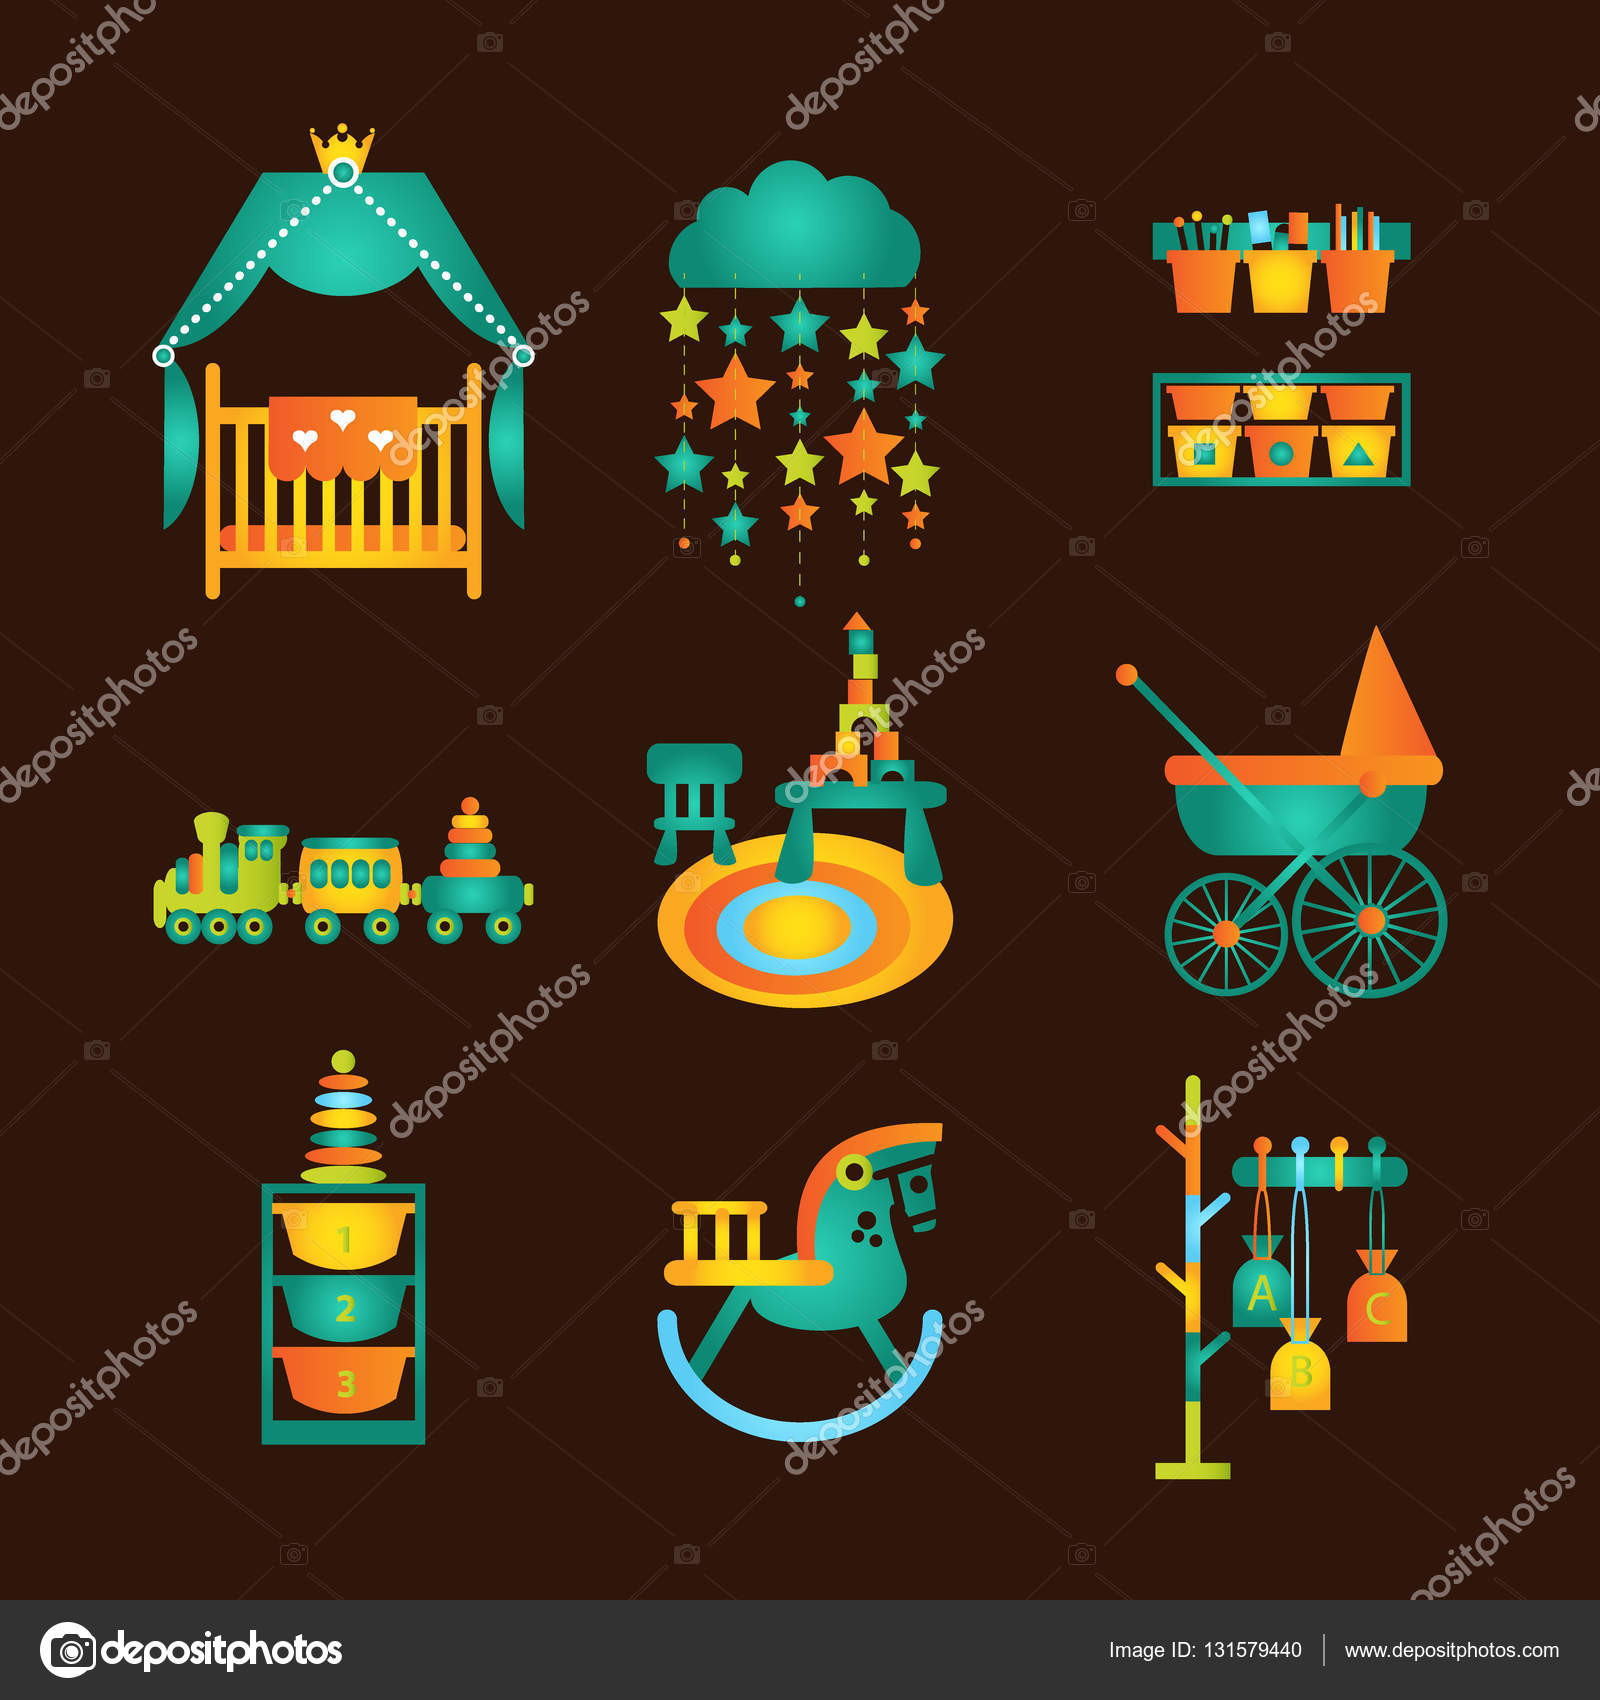 Kids and Nursery Furniture and Toys Set Flat style vector